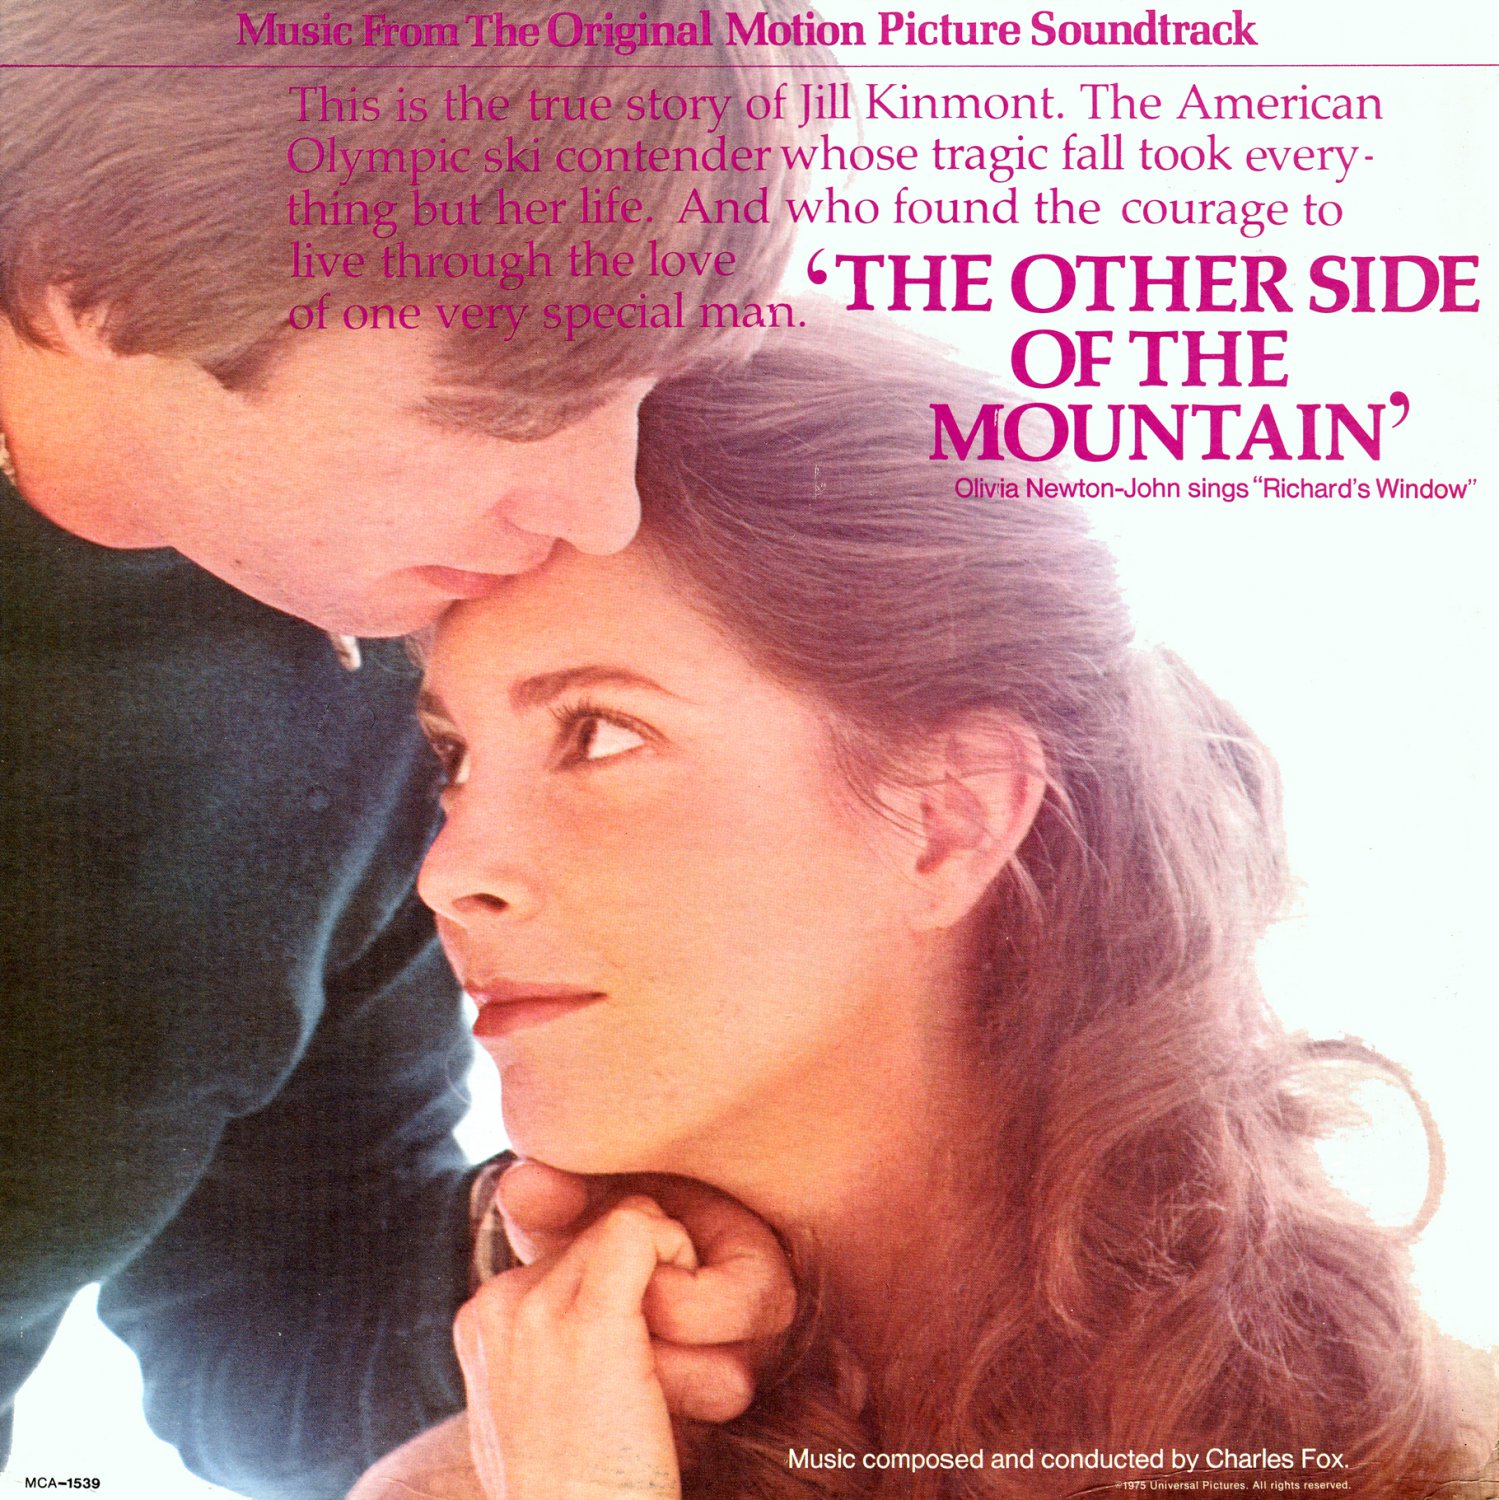 The Other Side Of The Mountain - Original Soundtrack, Charles Fox OST LP/CD